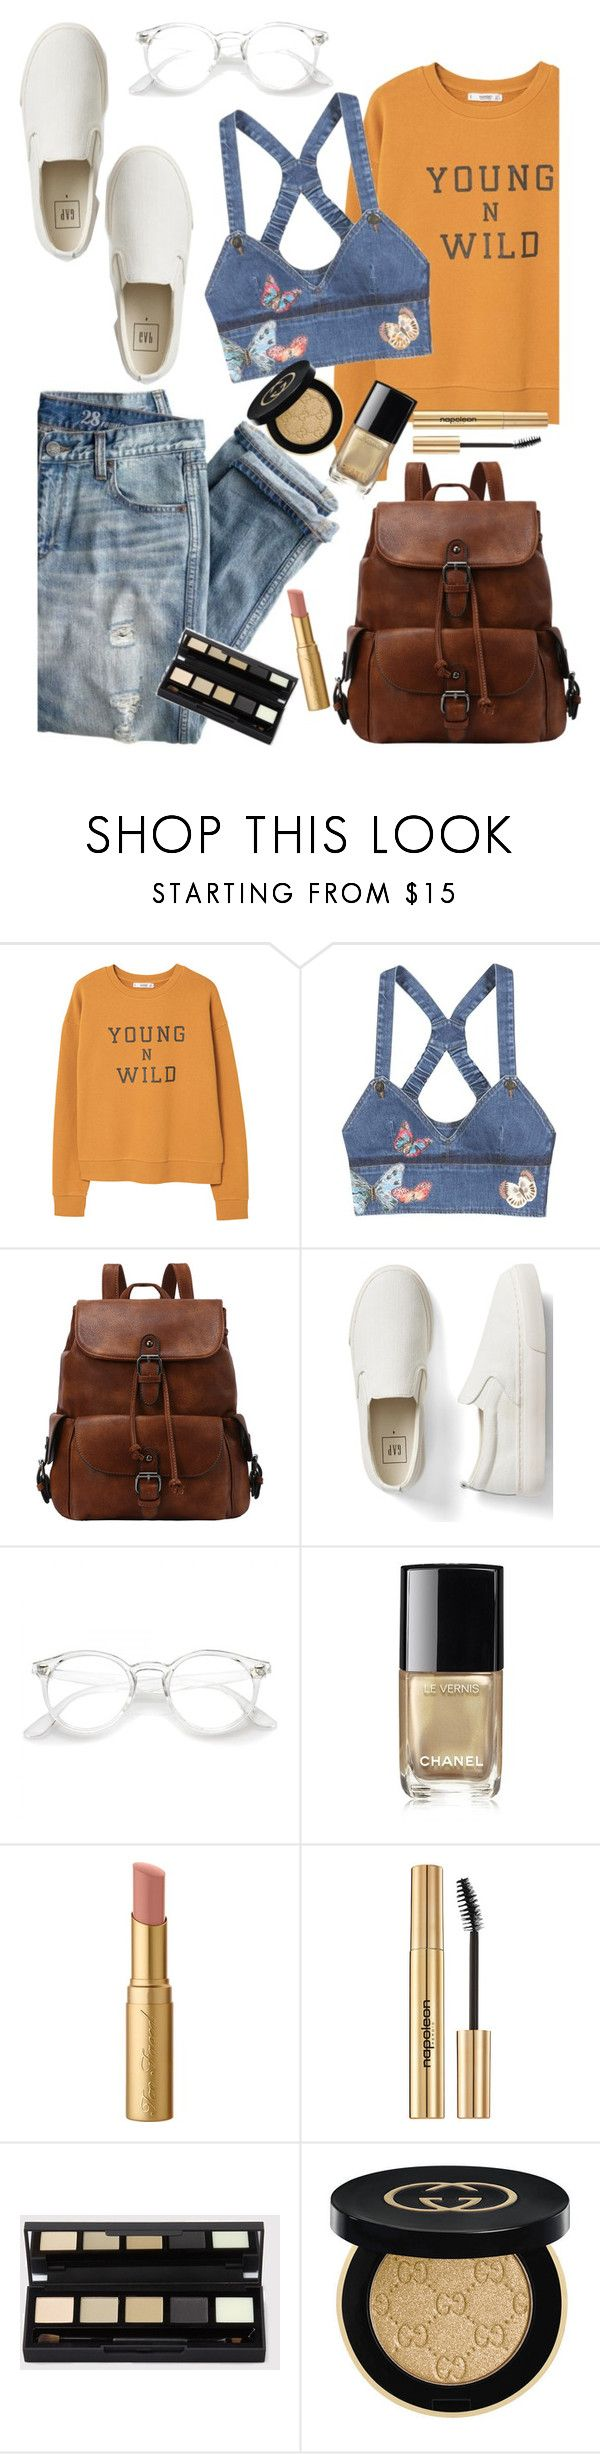 """""""Adventure of a Lifetime: Heidi in Germany"""" by ivyfanfic ❤ liked on Polyvore featuring J.Crew, MANGO, Valentino, Gap, Chanel, Too Faced Cosmetics, Napoleon Perdis and Gucci"""